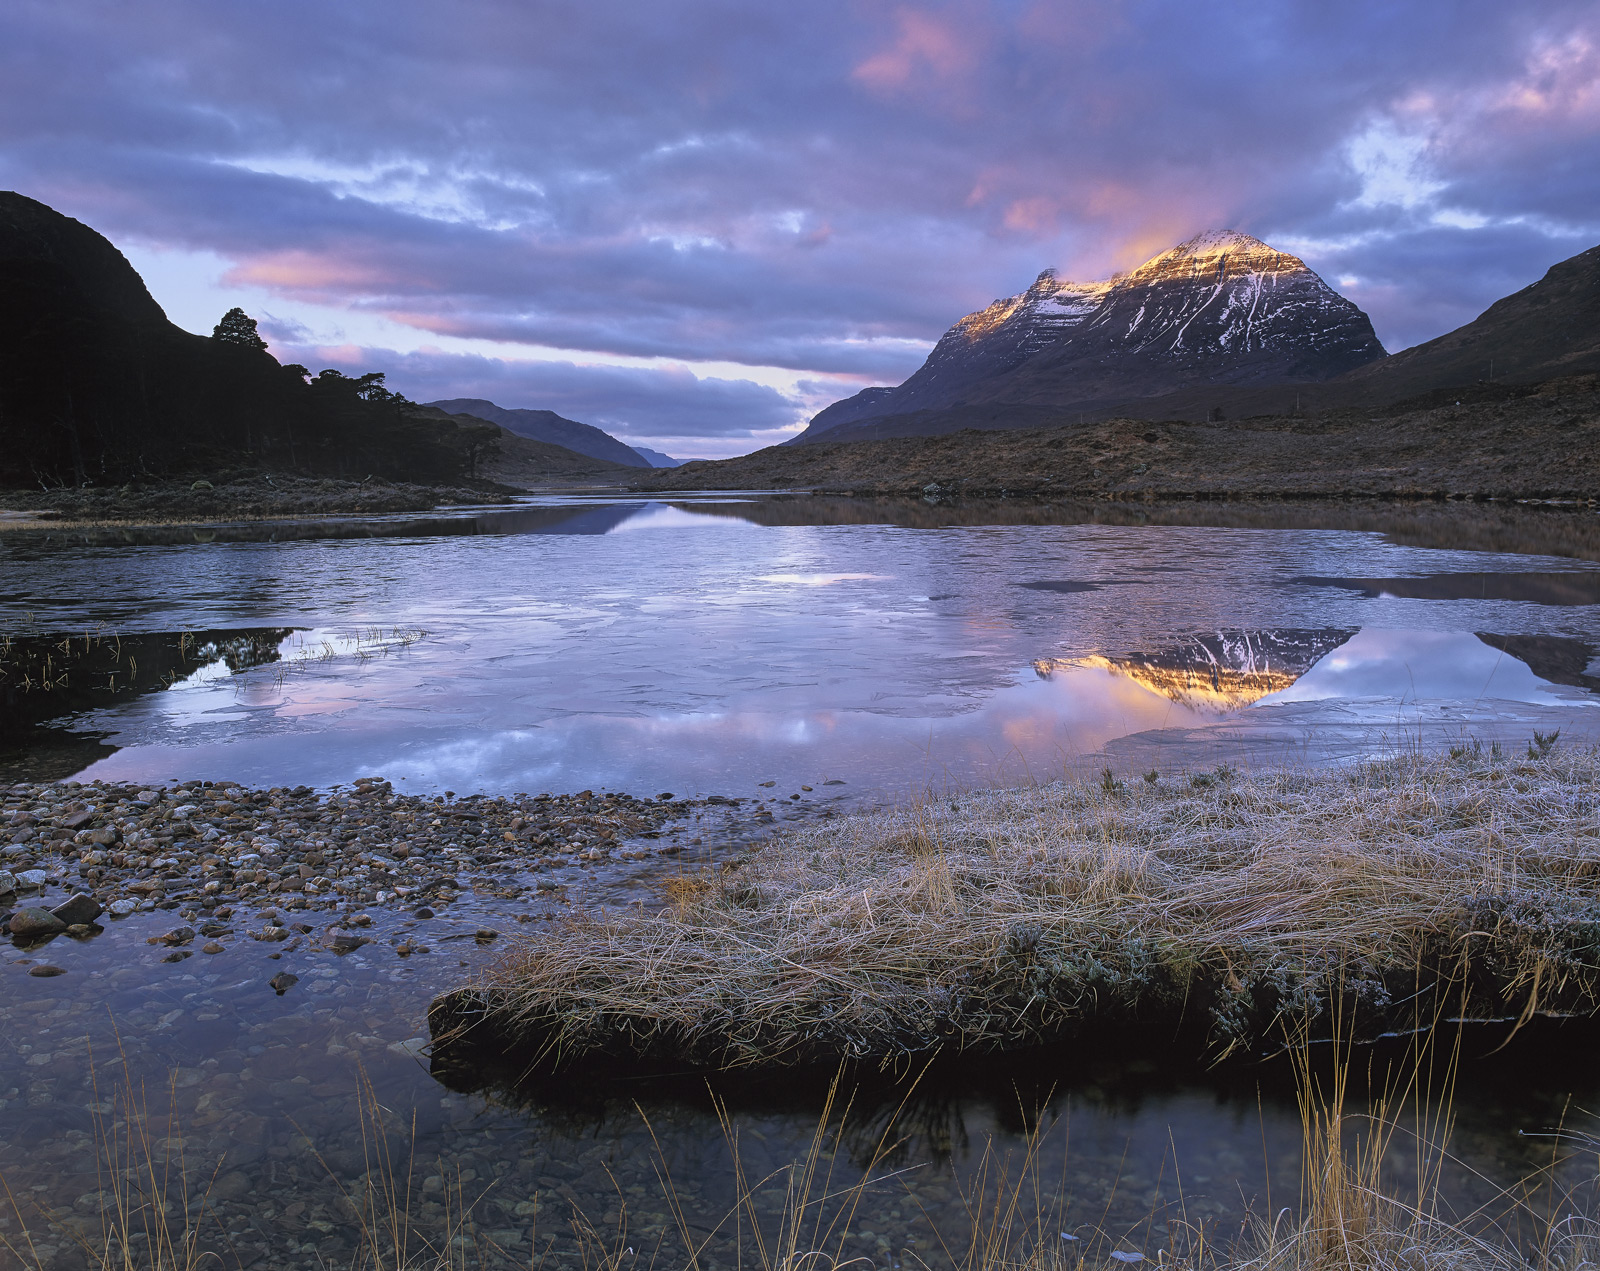 It was not a particularly promising morning standing around freezing various parts of my anatomy at Loch Clair with the ominous...